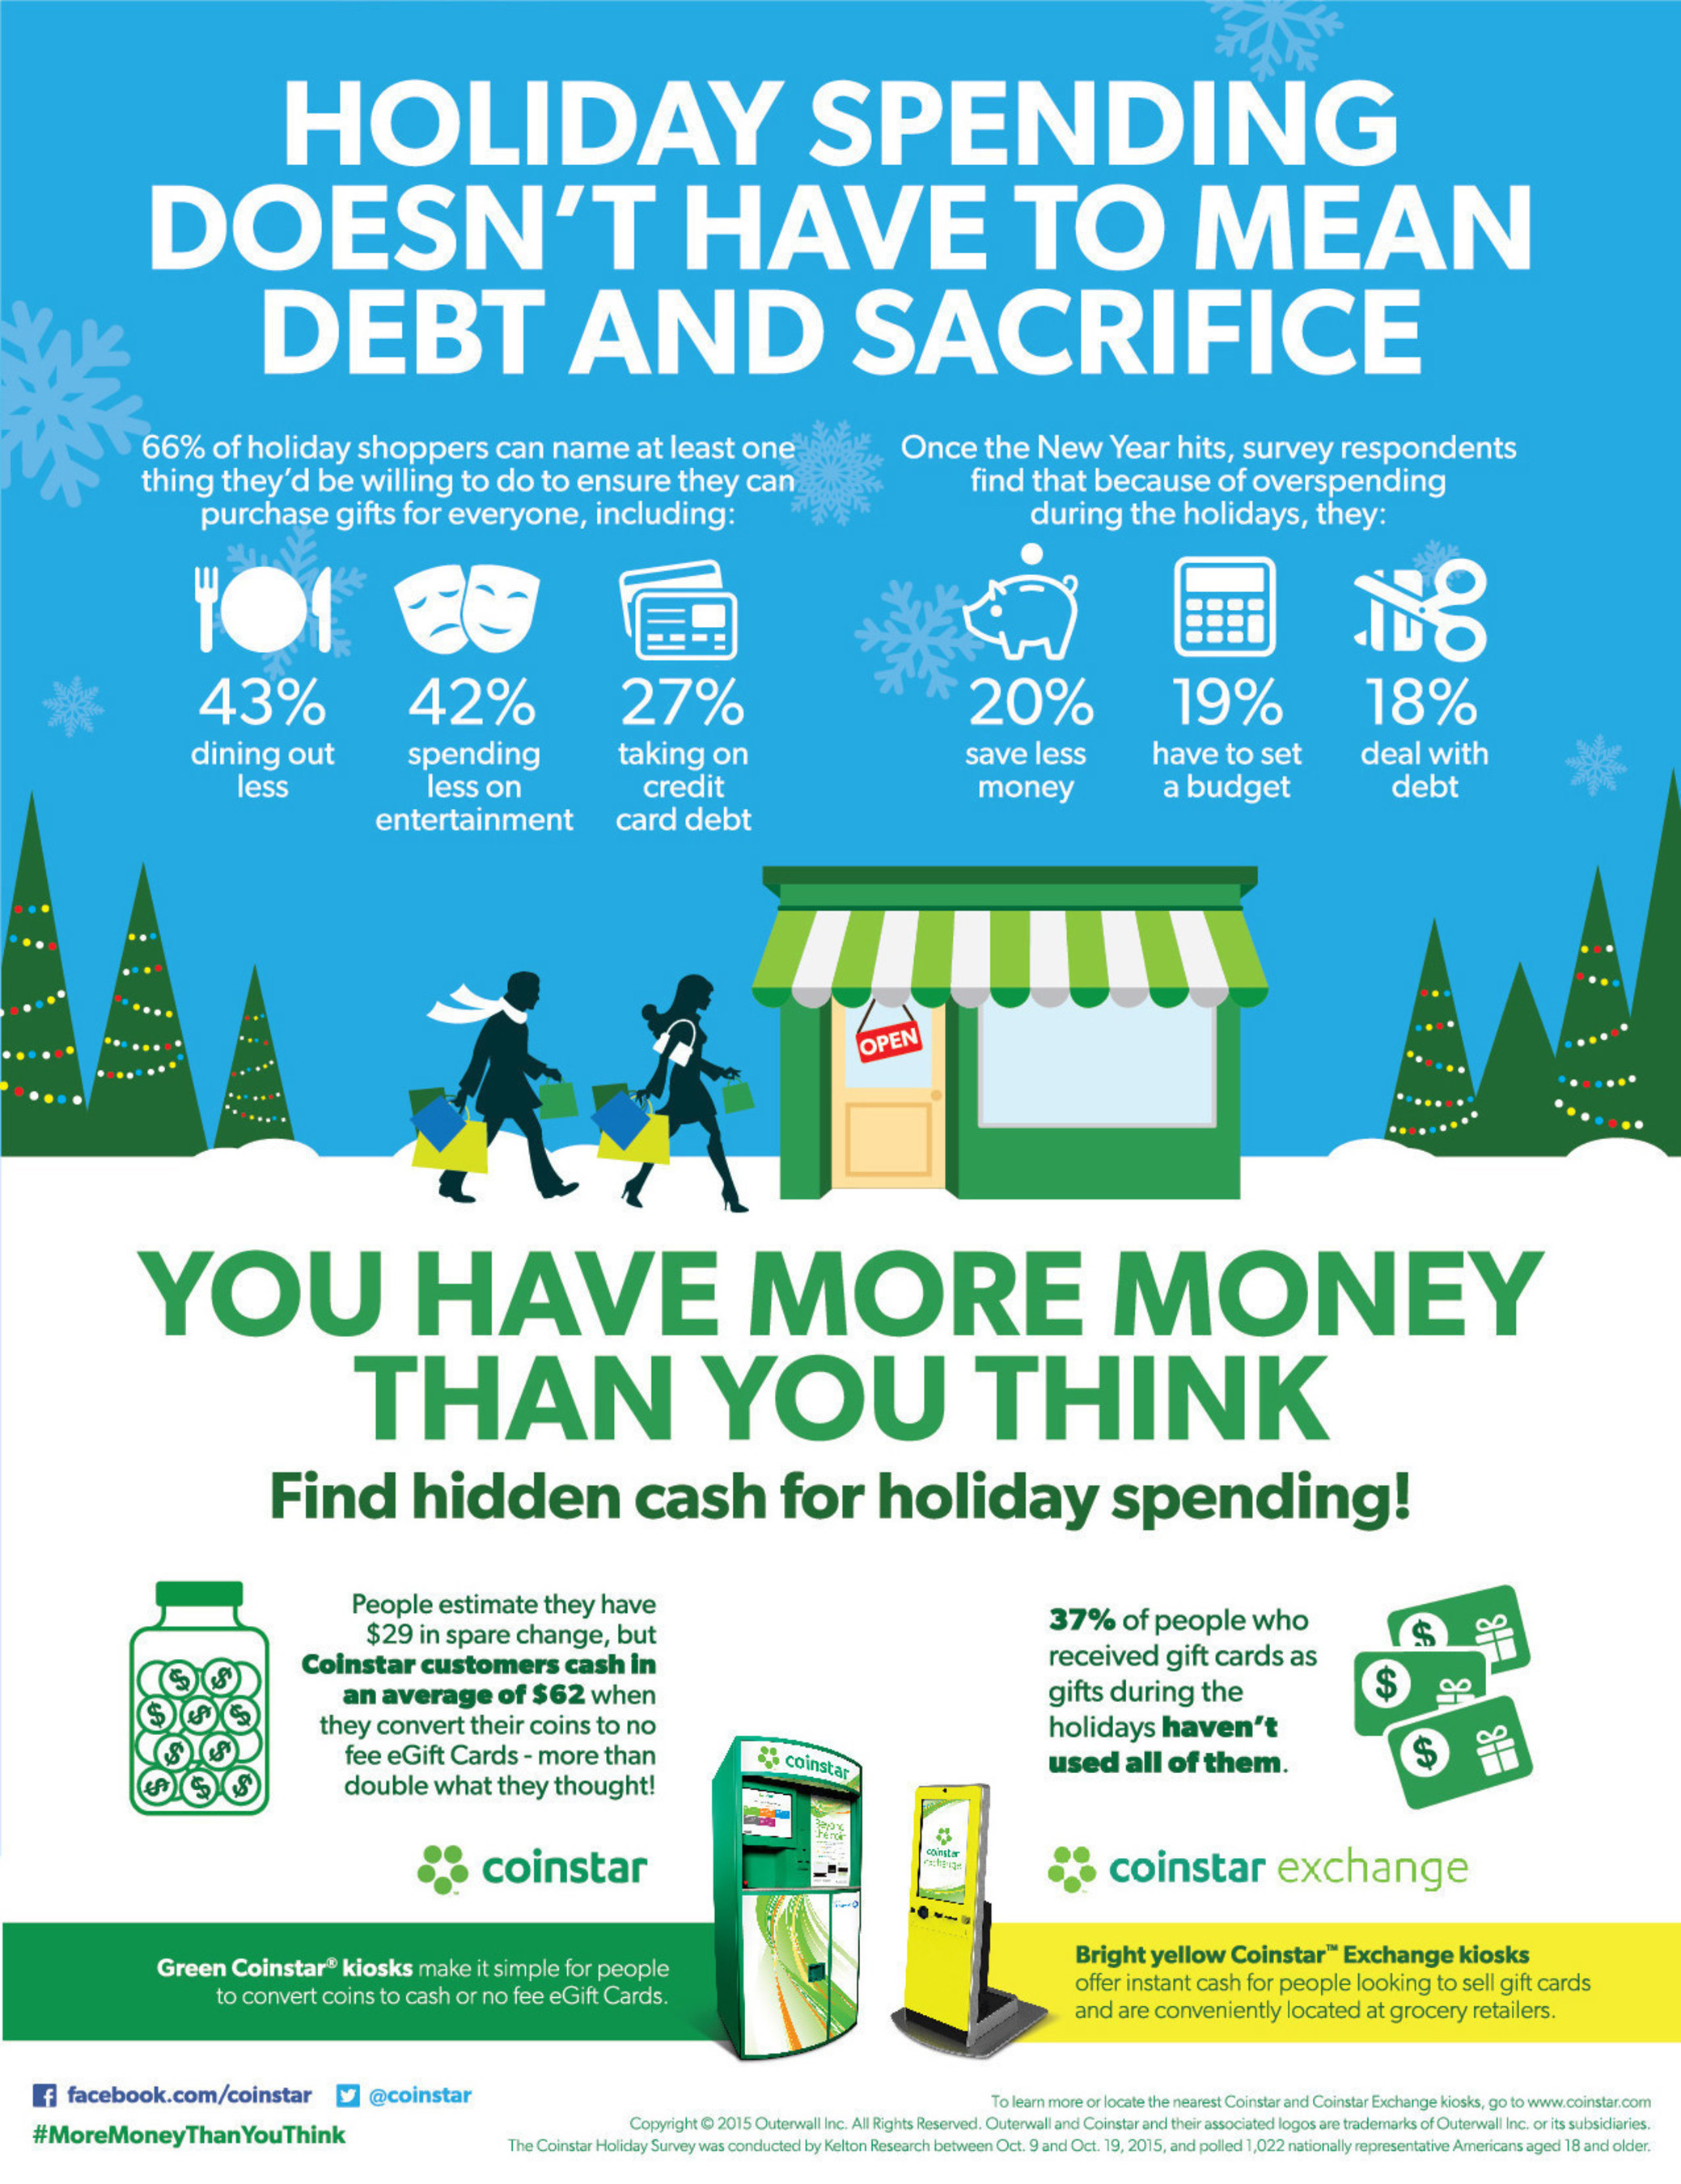 Holiday spending doesn't have to mean debt and sacrifice. Find hidden cash for holiday spending!